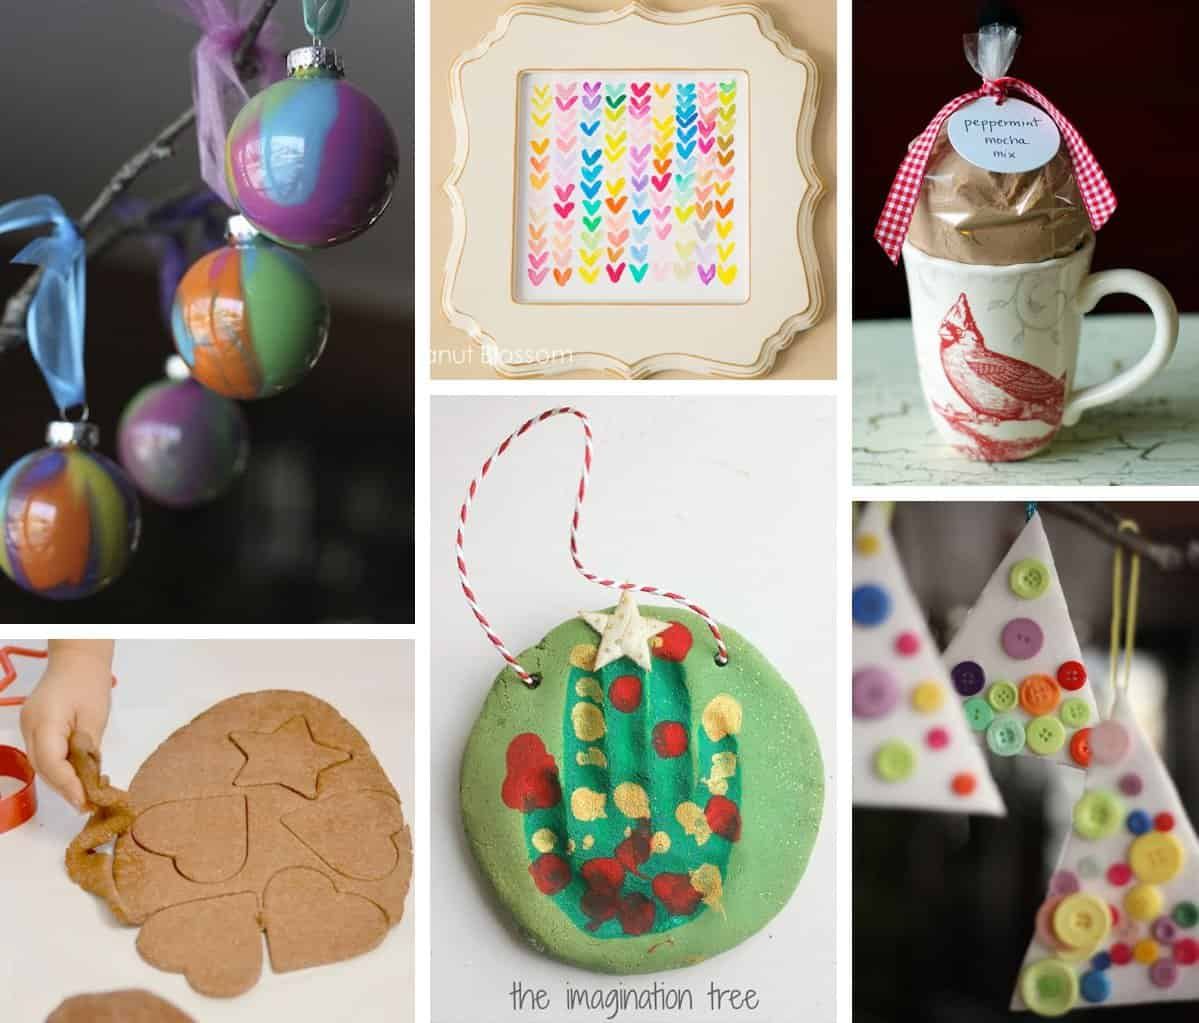 Homemade christmas gifts ideas for kids - Awesome Handmade Presents 10 Diy Holiday Gifts Kids Can Help Make